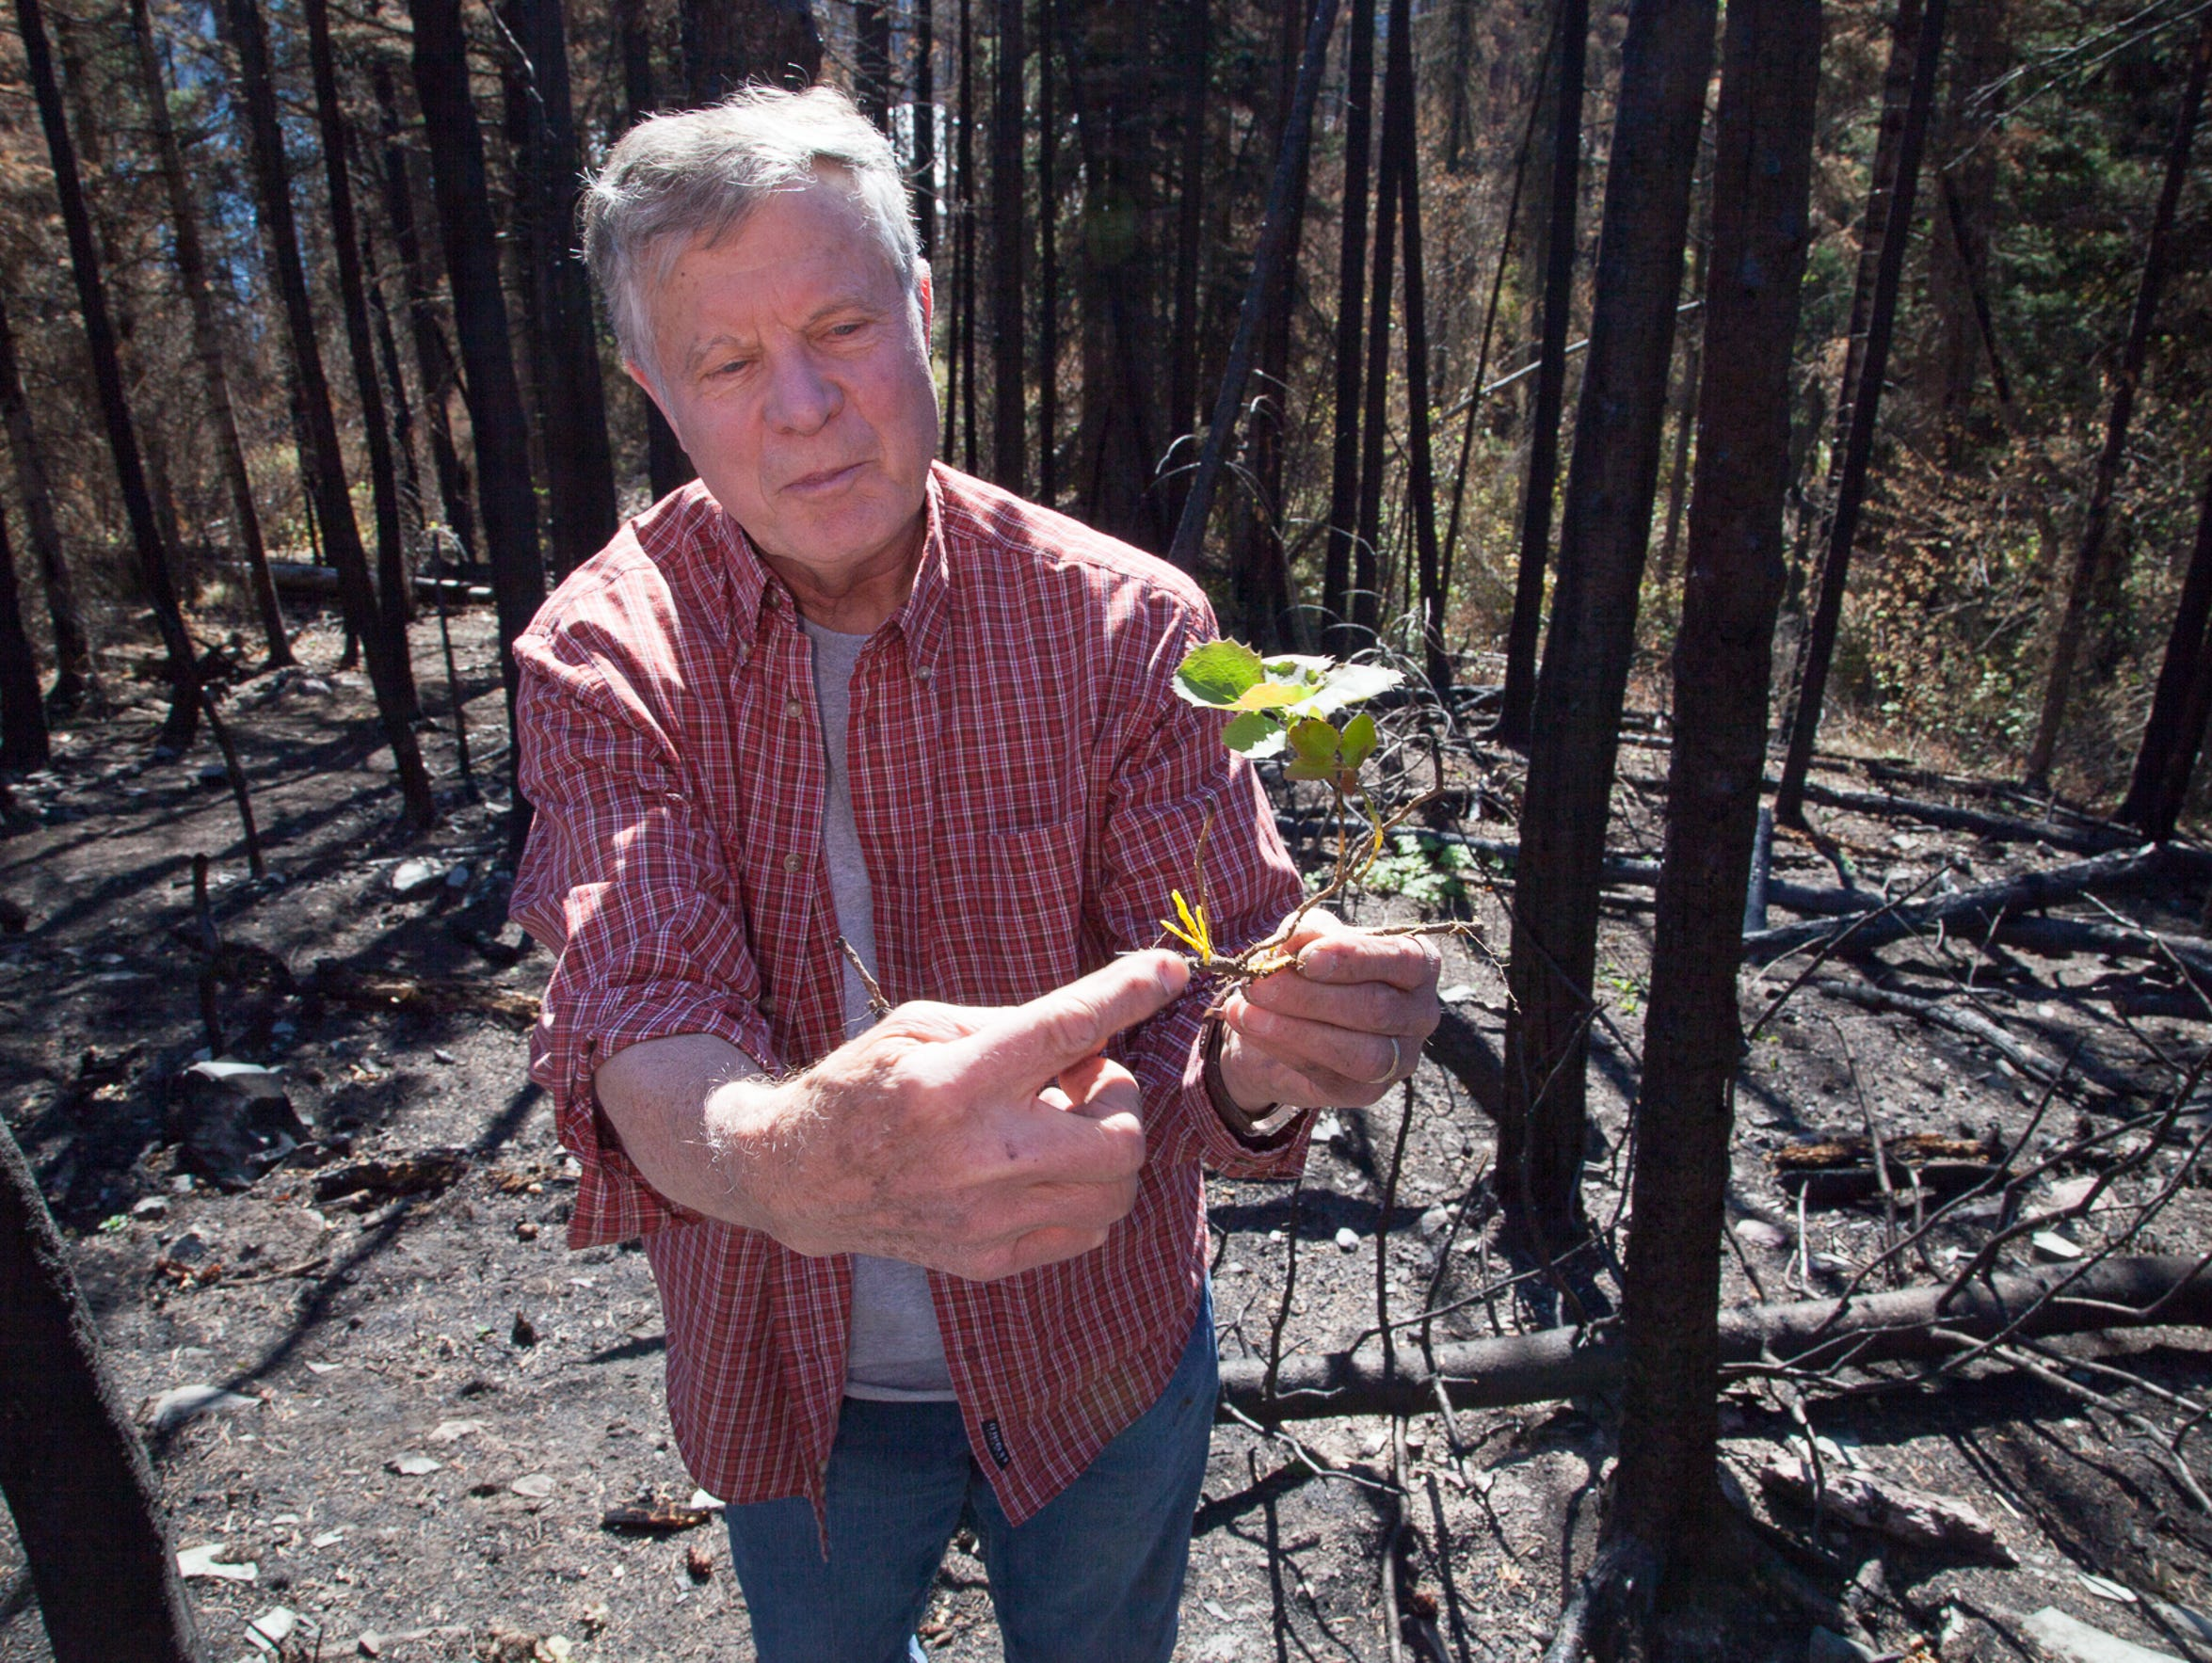 Wayne Phillips points out sprouting new vegetation